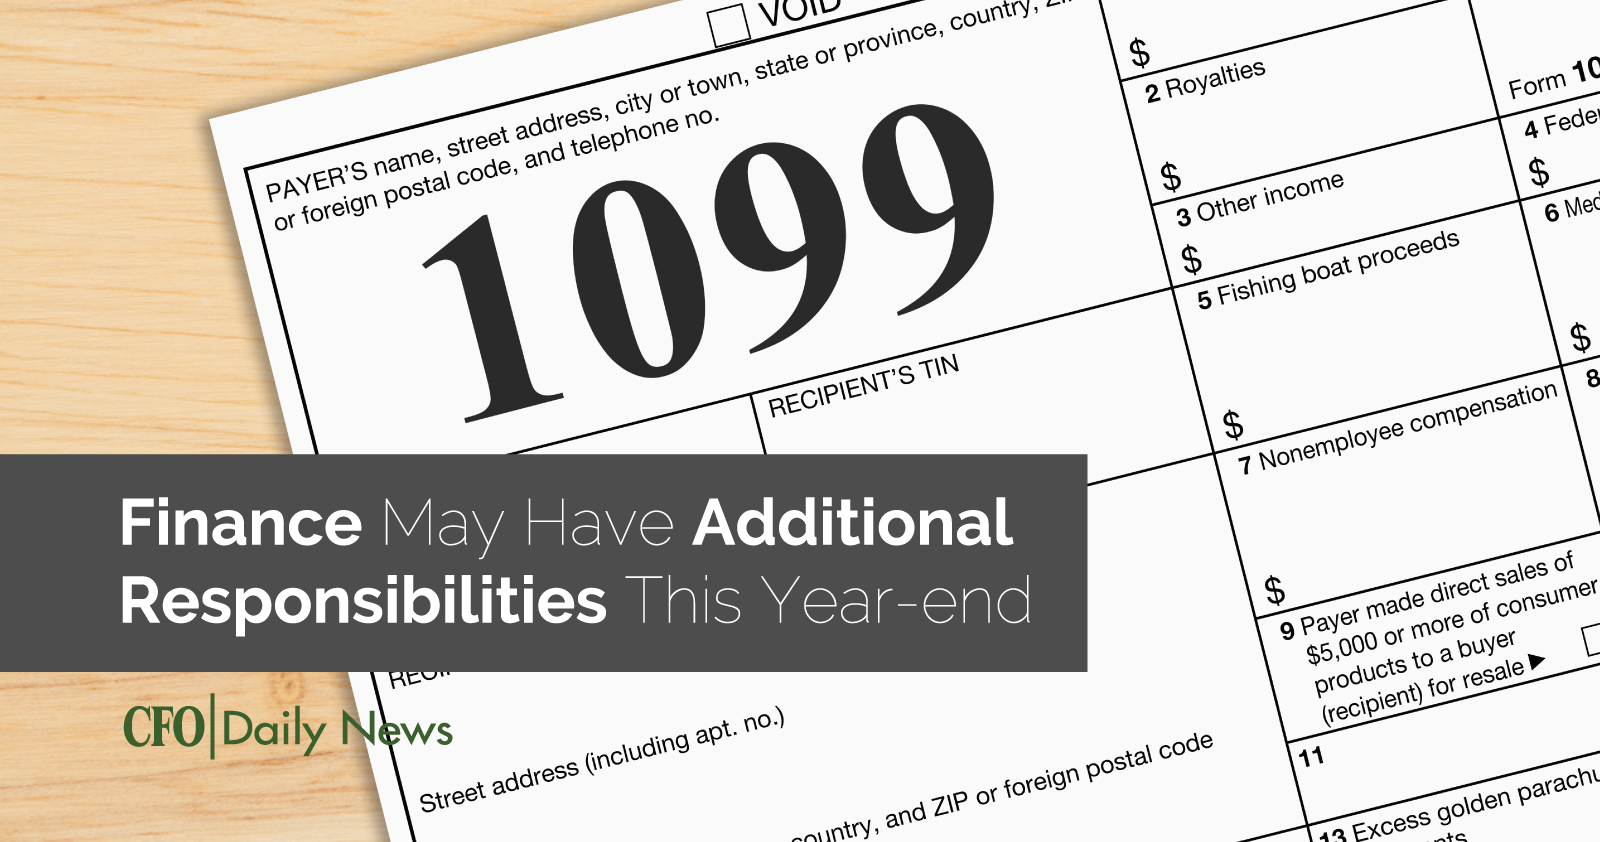 Form 1099-NEC excluded from IRS's combined filing program